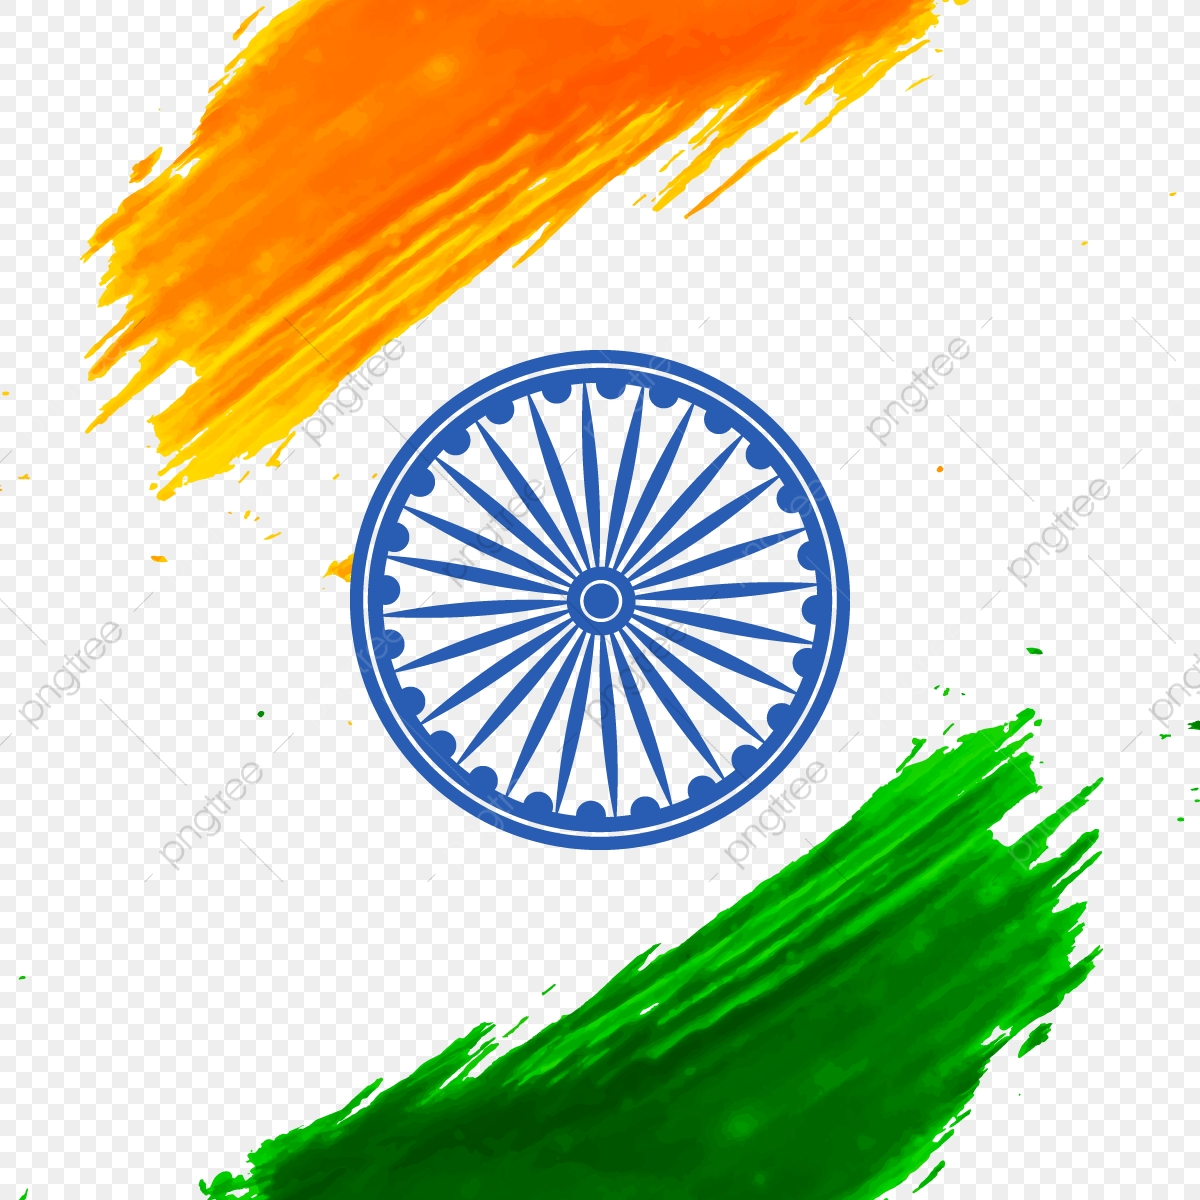 Abstract Of India Independence Day With Ashoka Chakra Abstract Card Flag Png And Vector With Transparent Background For Free Download